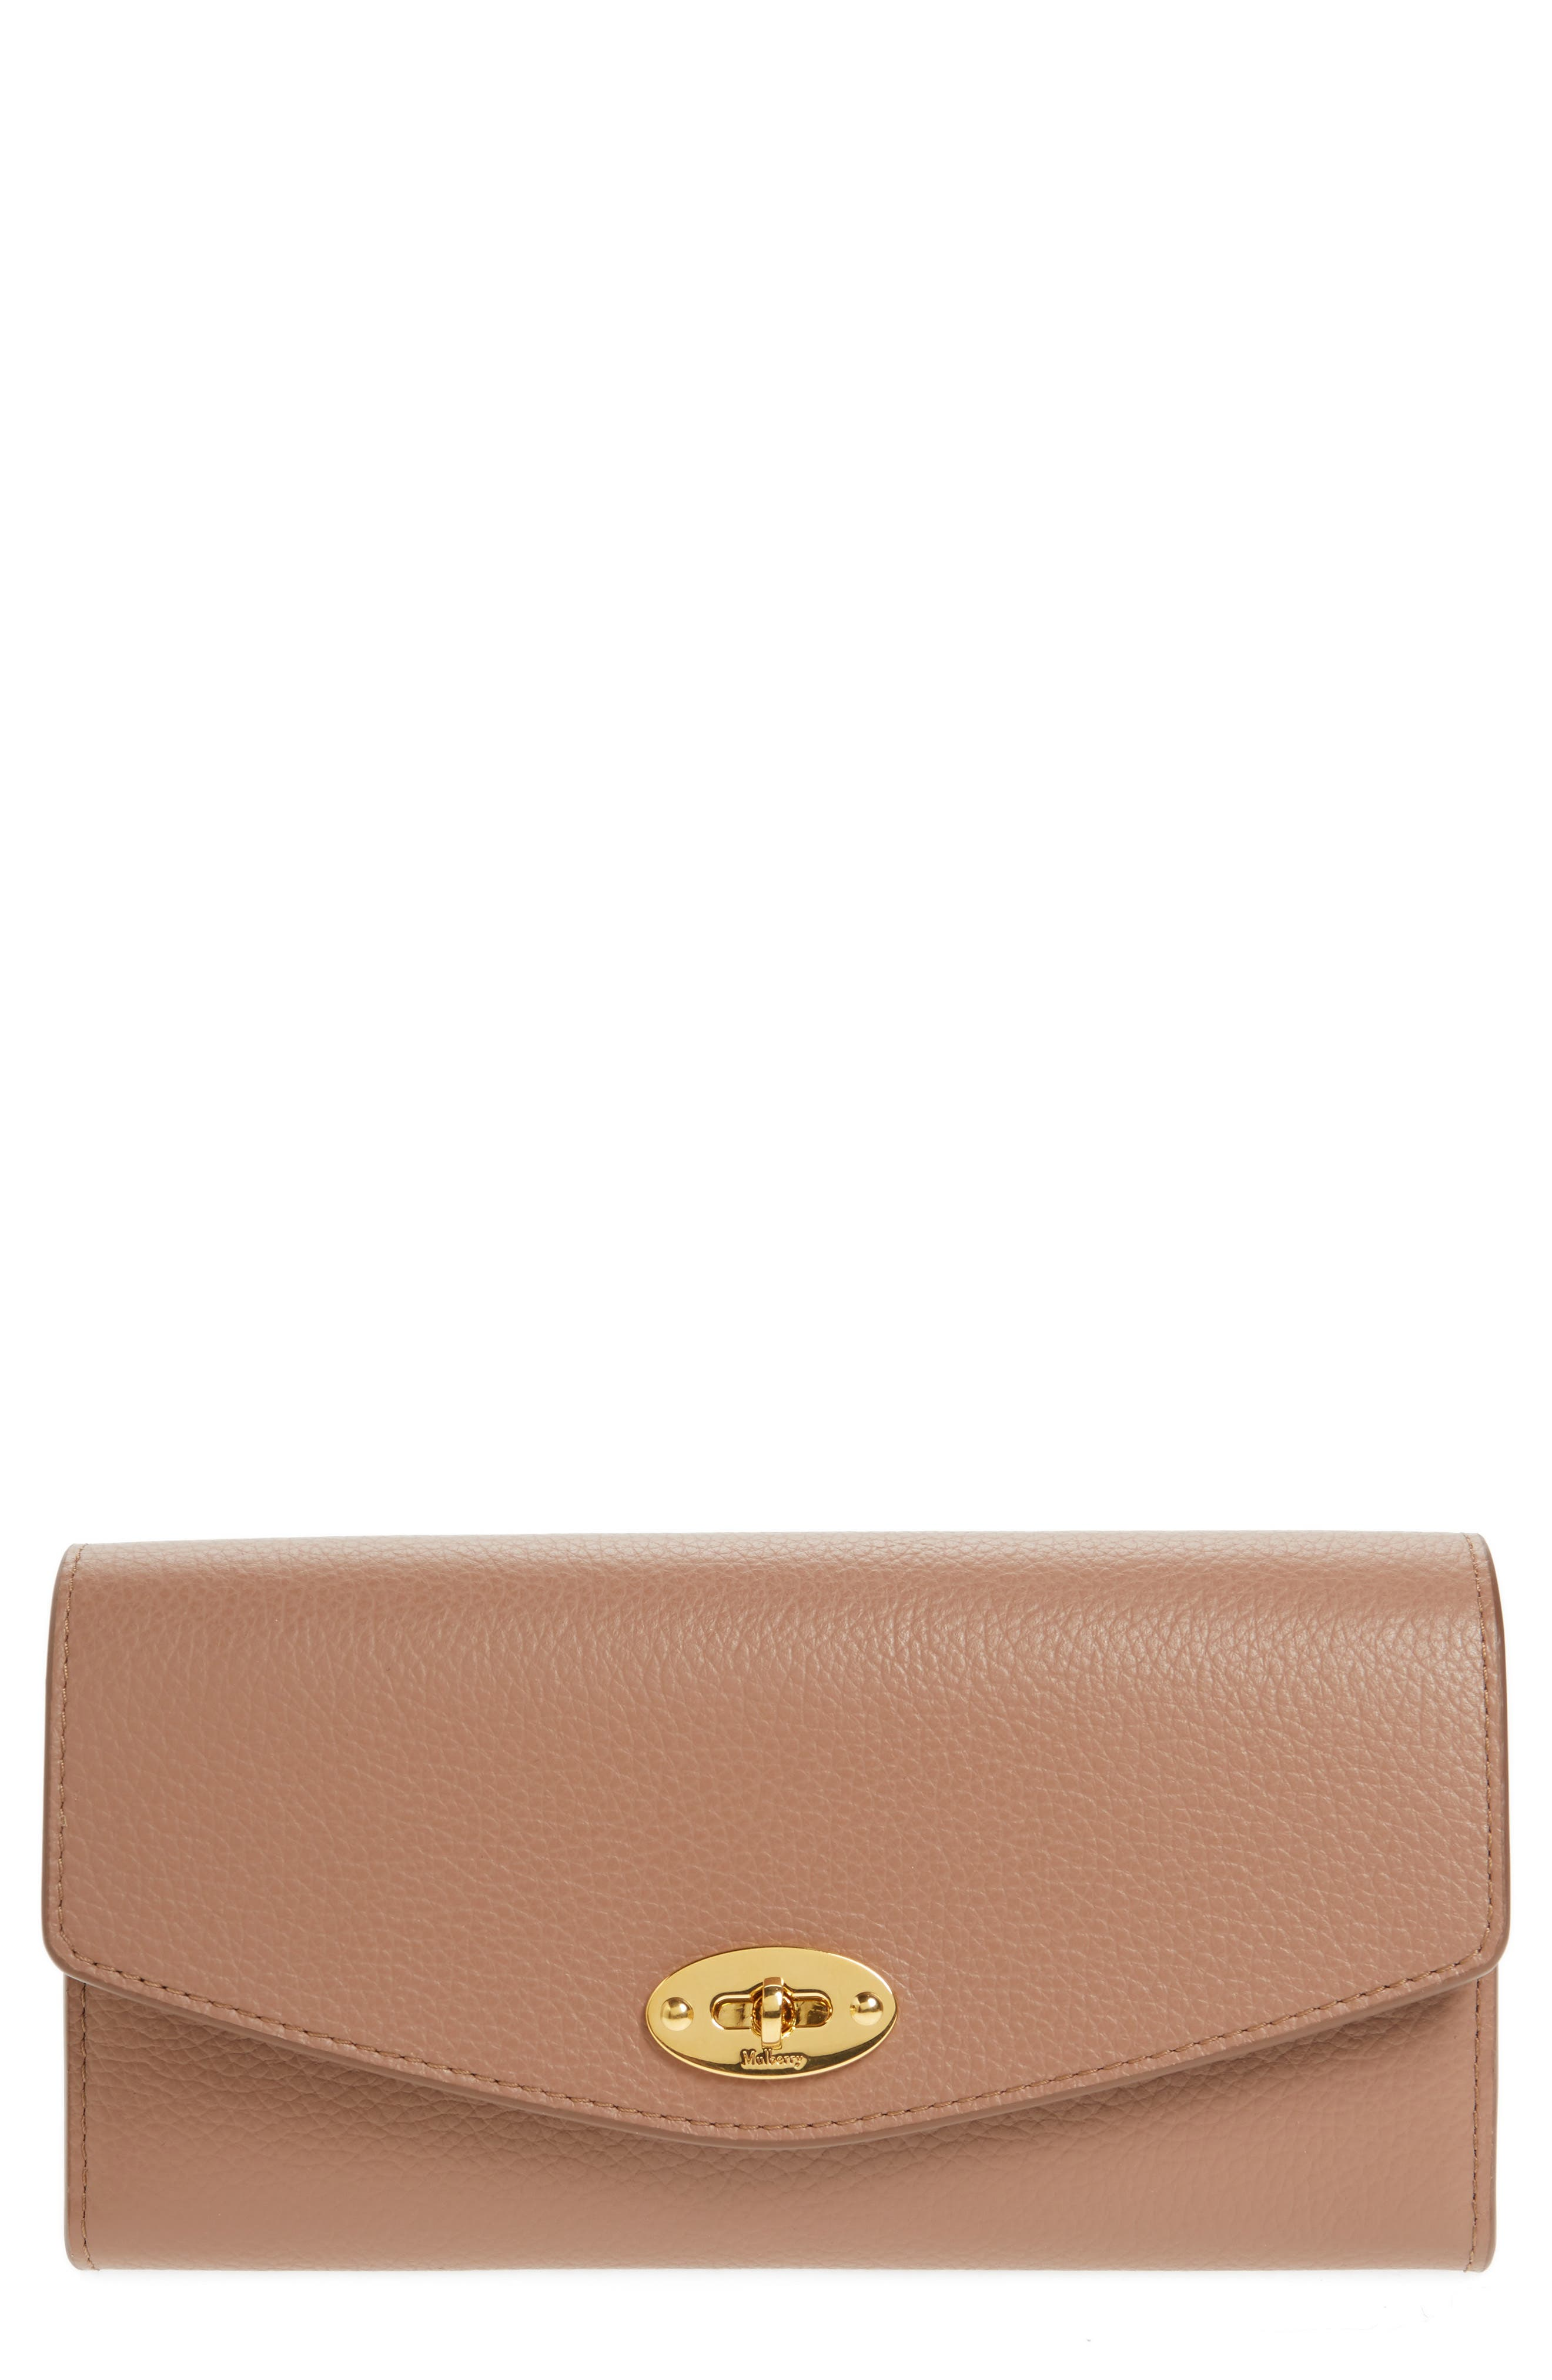 Alternate Image 1 Selected - Mulberry Darley Continental Leather Wallet